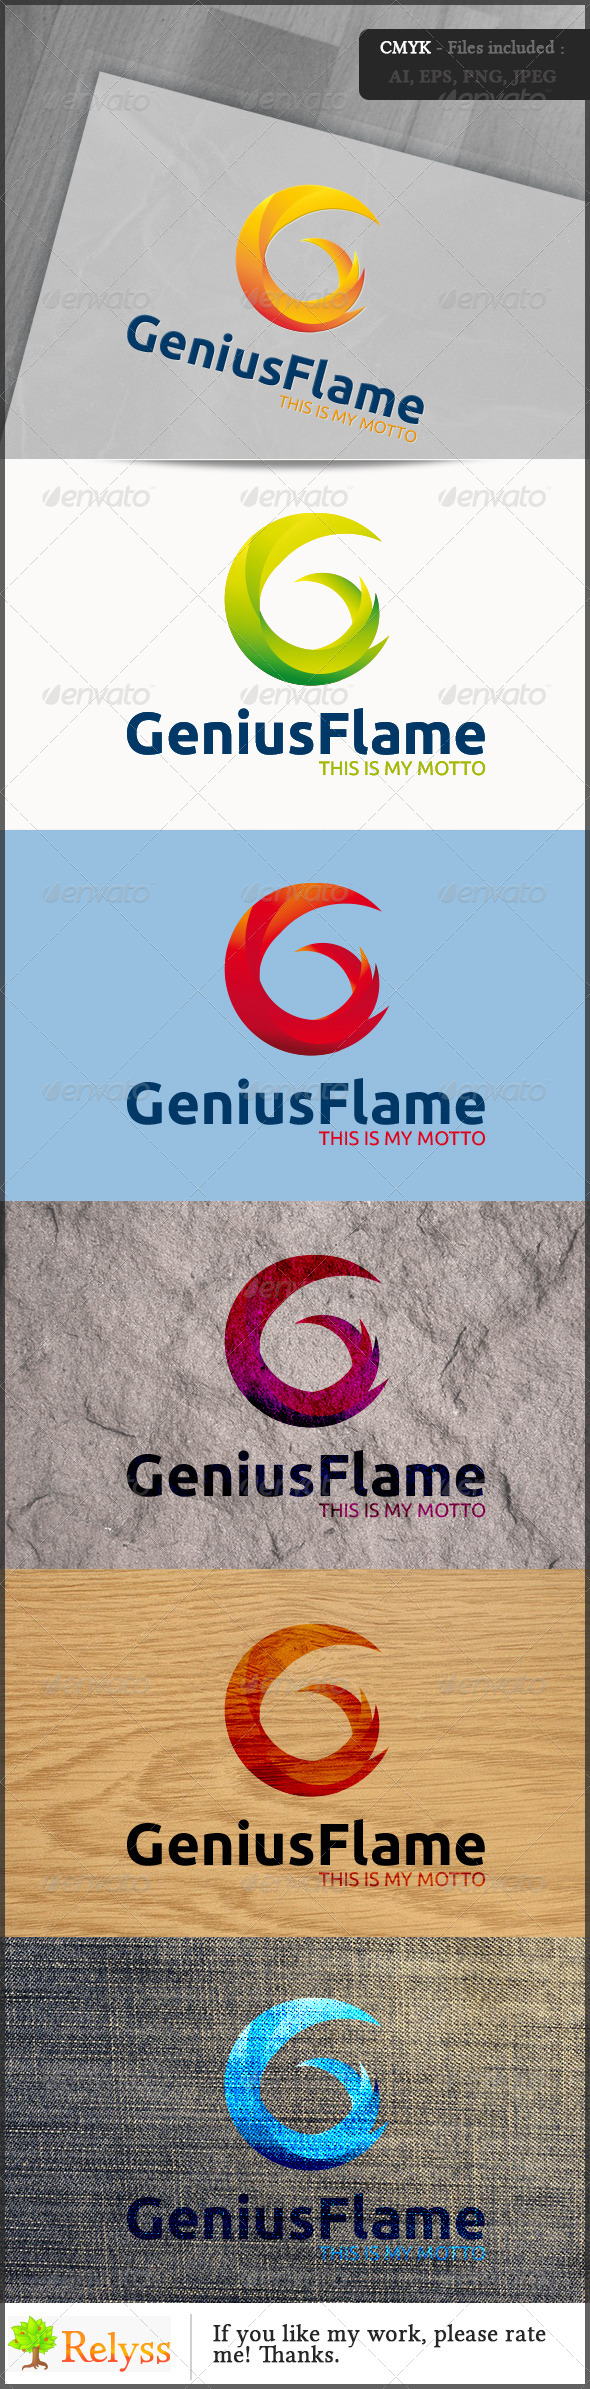 GraphicRiver GeniusFlame 7055247